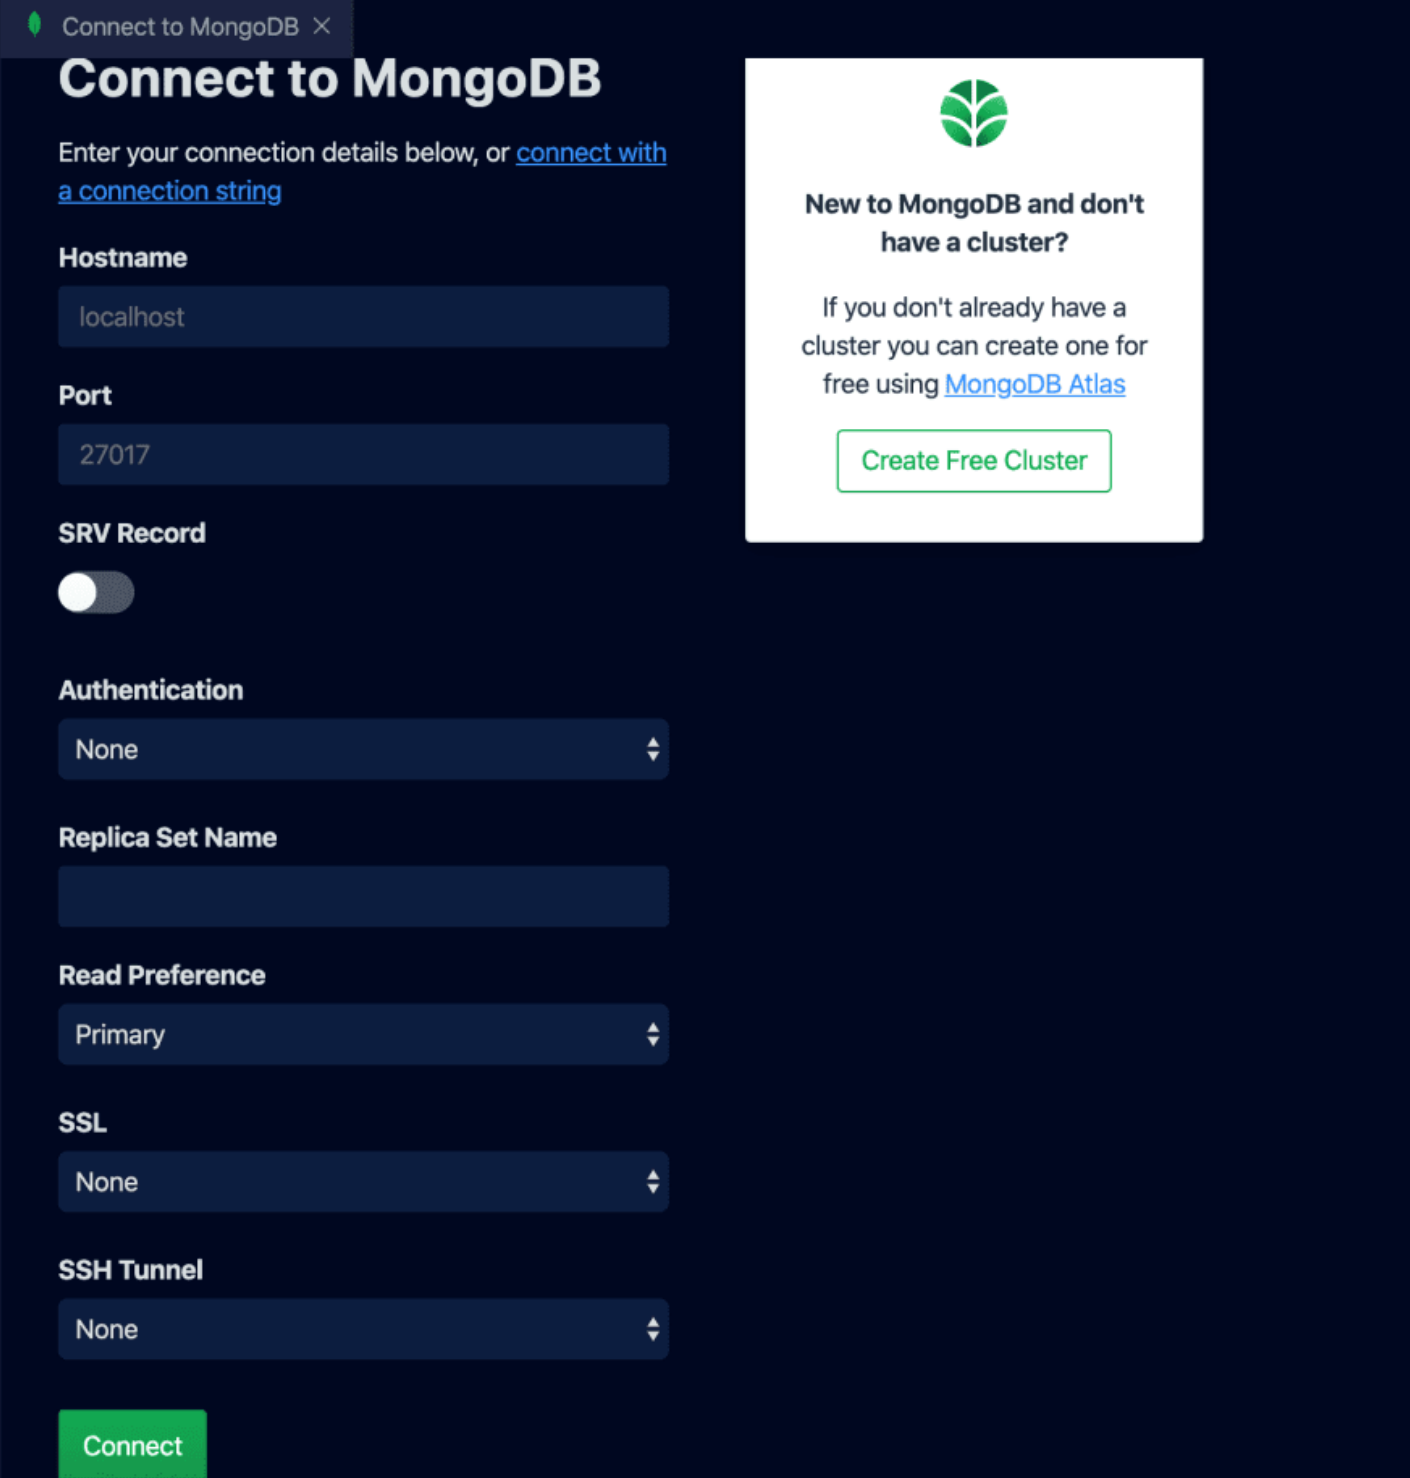 Screenshot of the 'Connect to MongoDB' screen in VS Code.